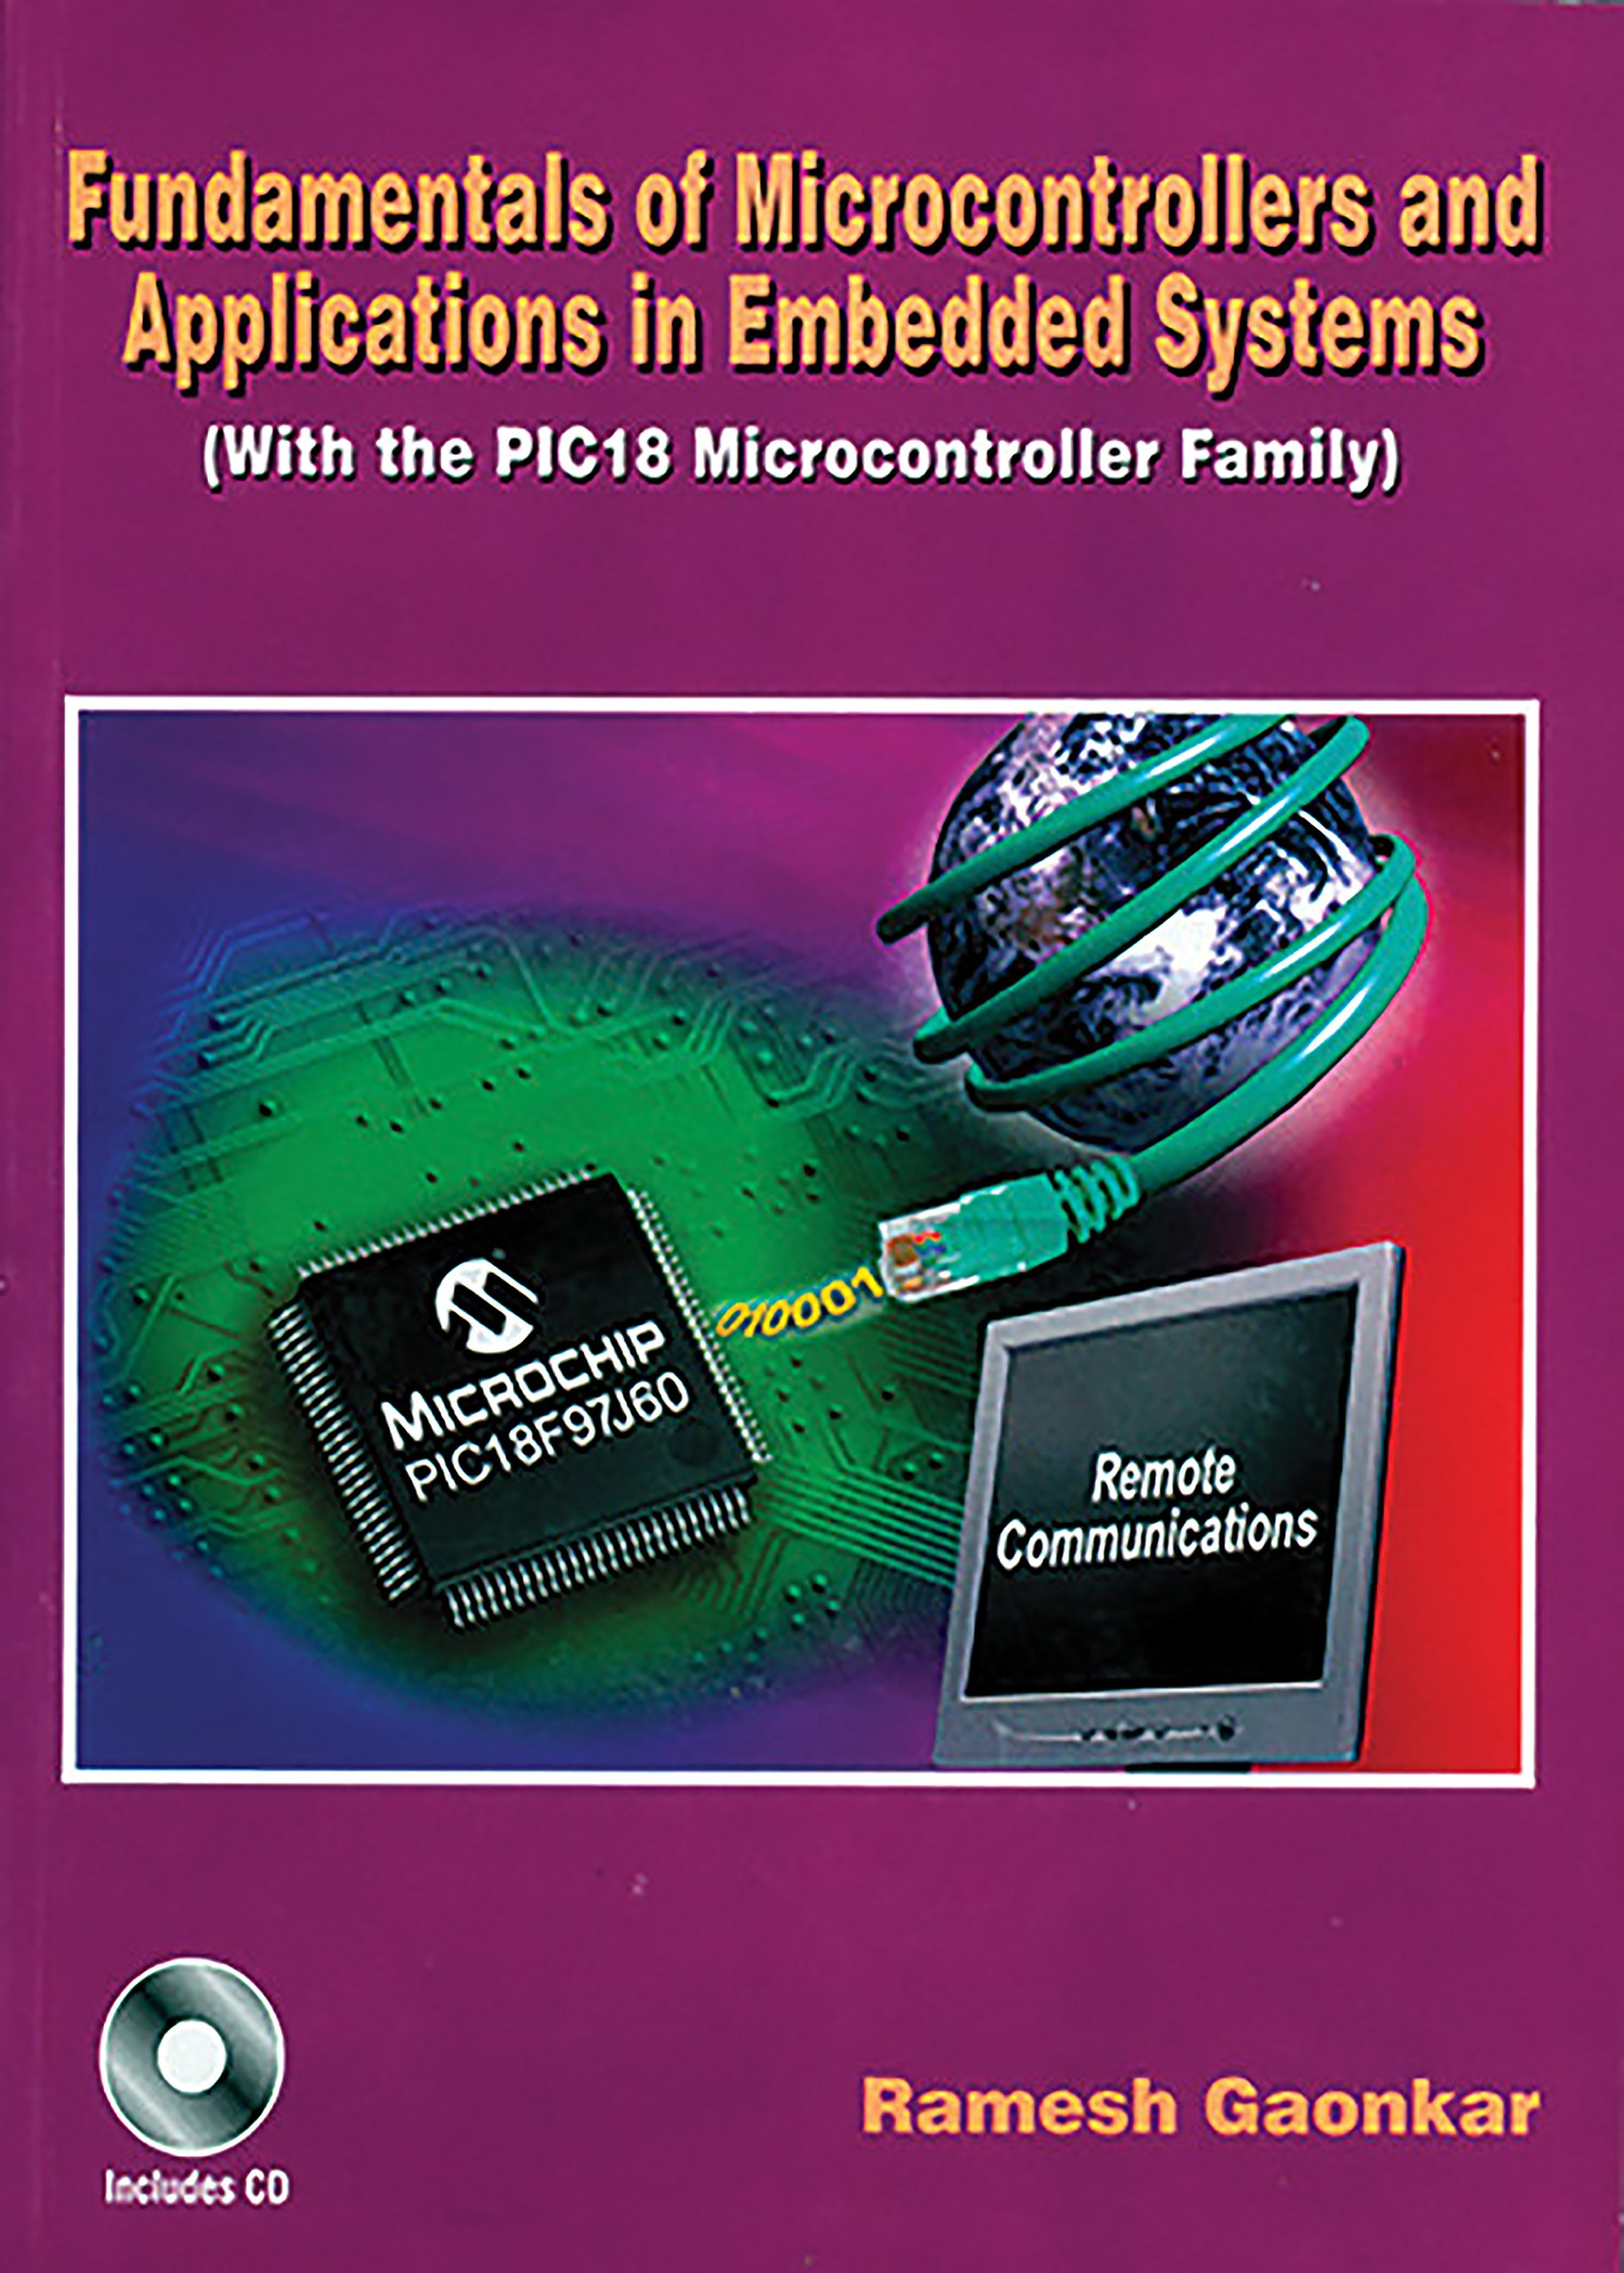 Fundamentals Of Microcontrollers And Applications In Embedded Systems Blog Pic Microcontroller Based Electronic Lock With The Pic18 Family Ramesh Gaonkar 9788187972297